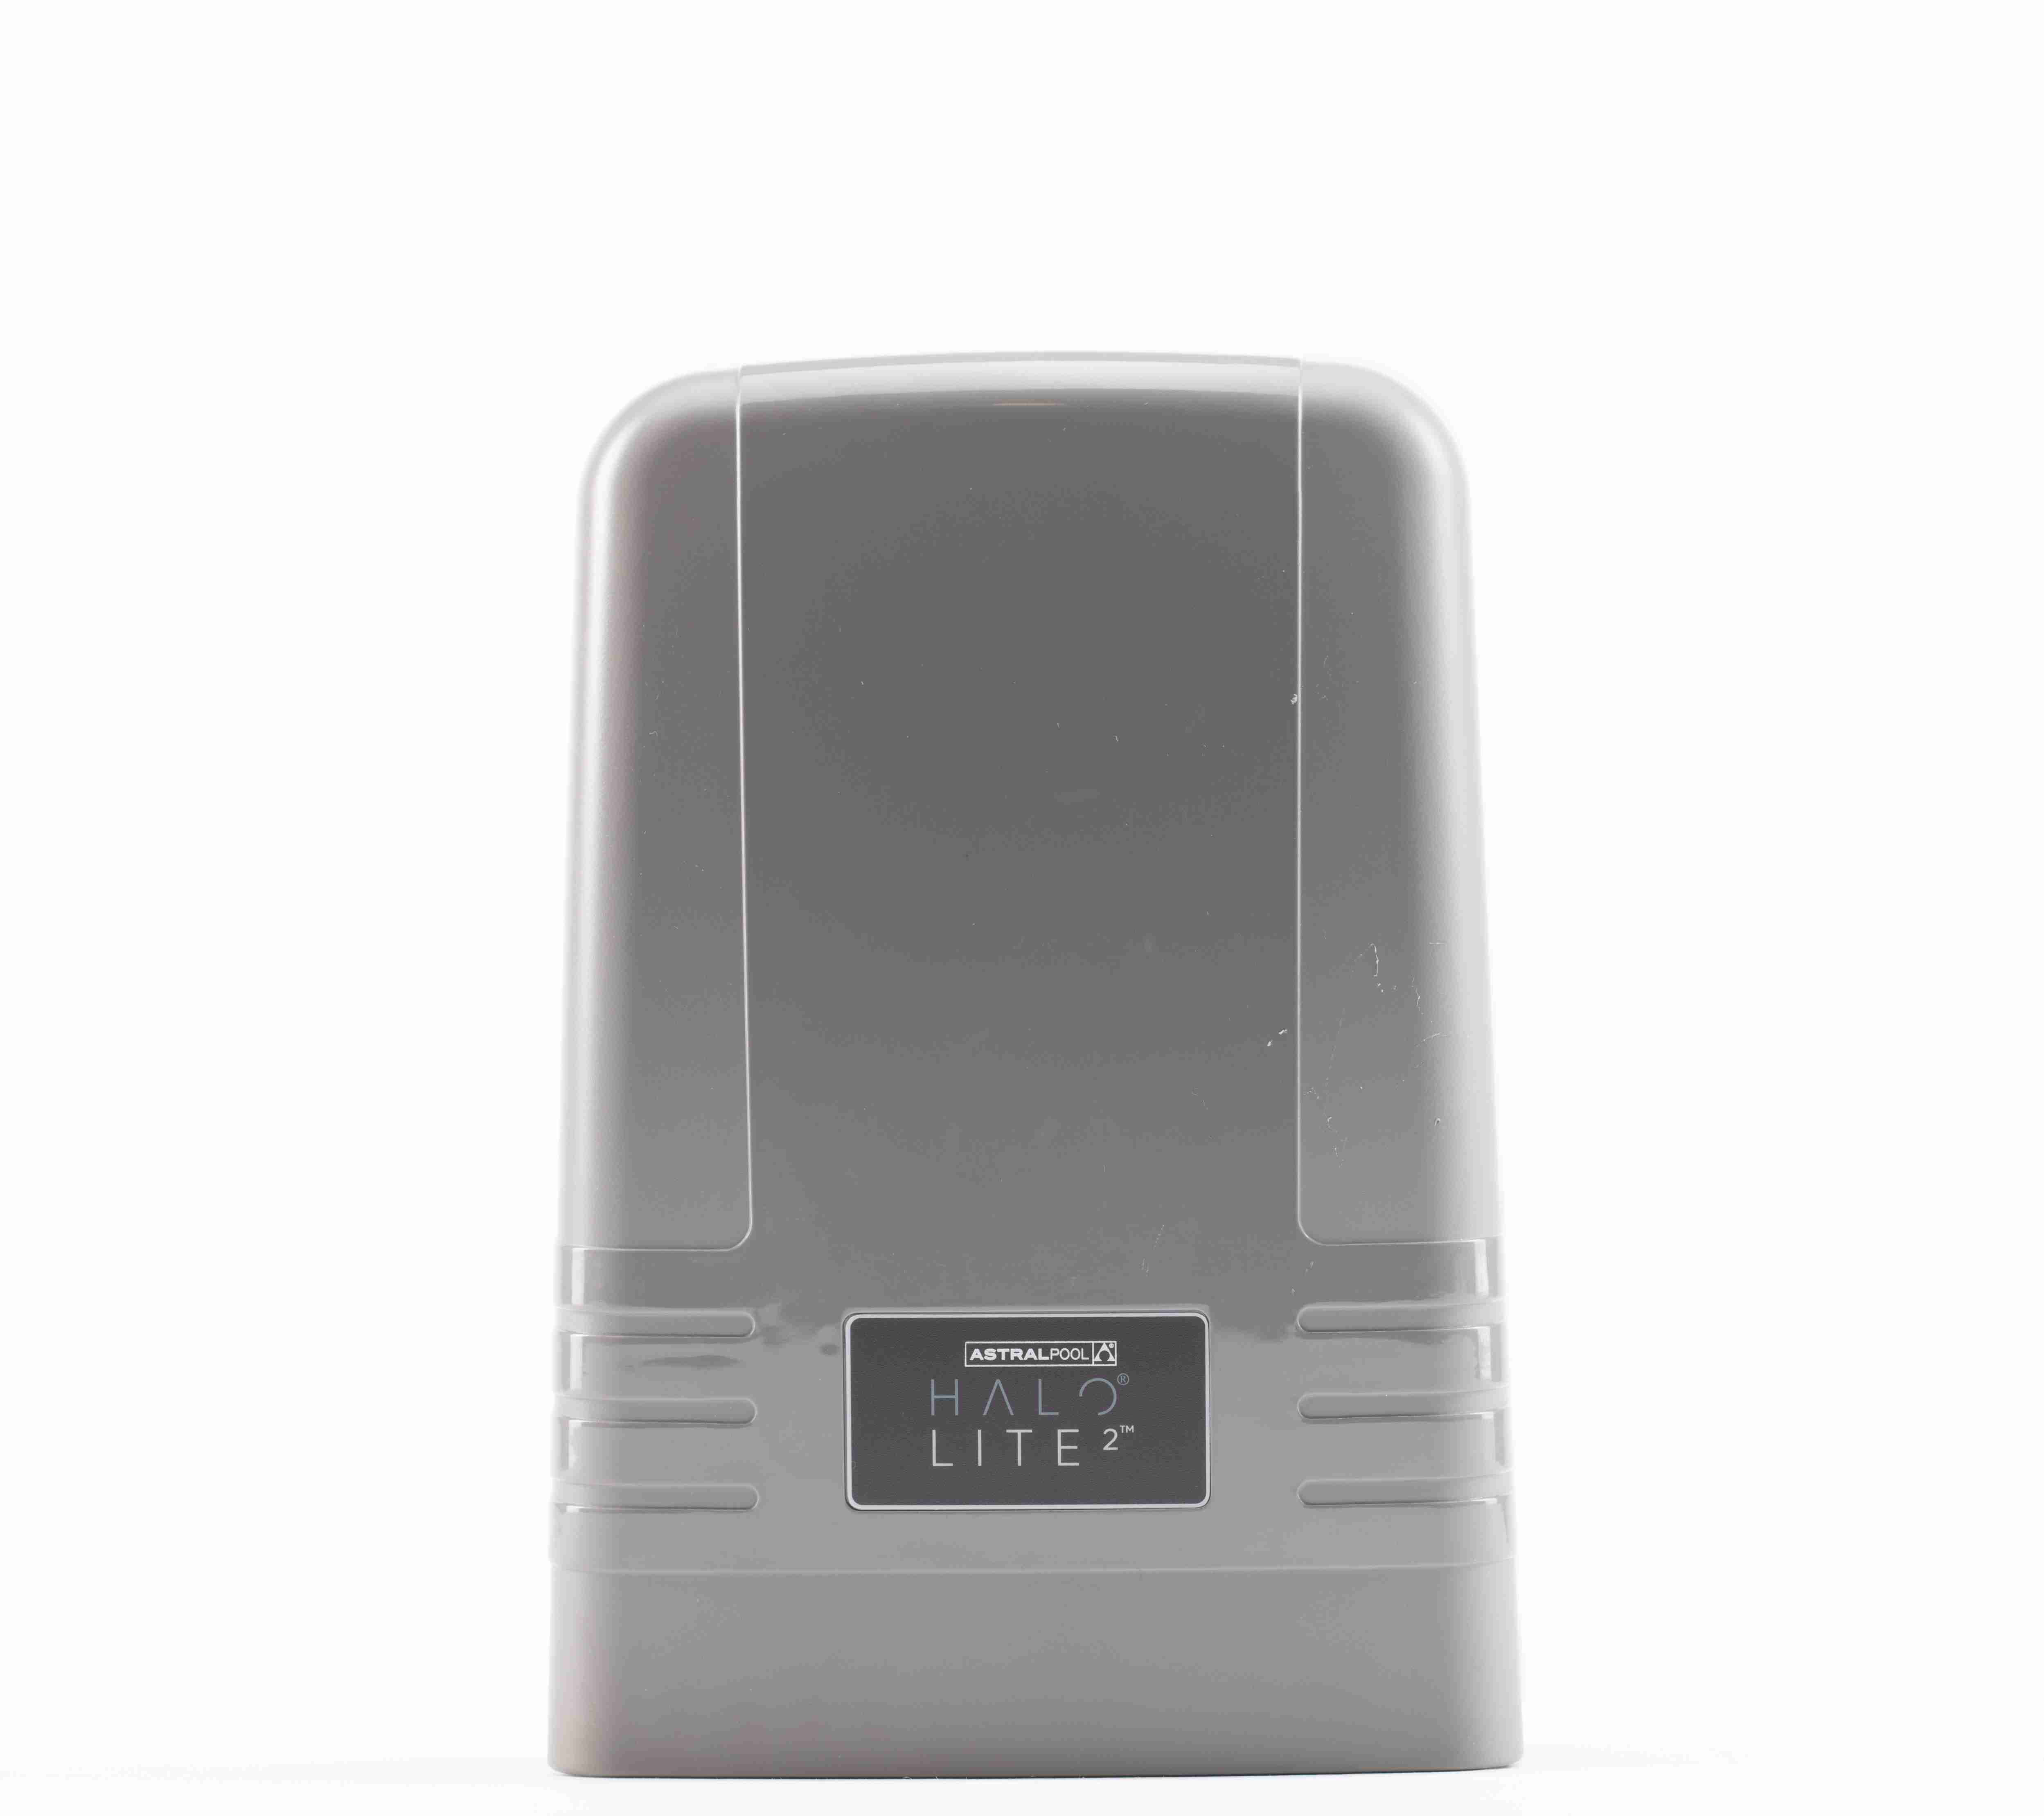 Halo Lite featured product